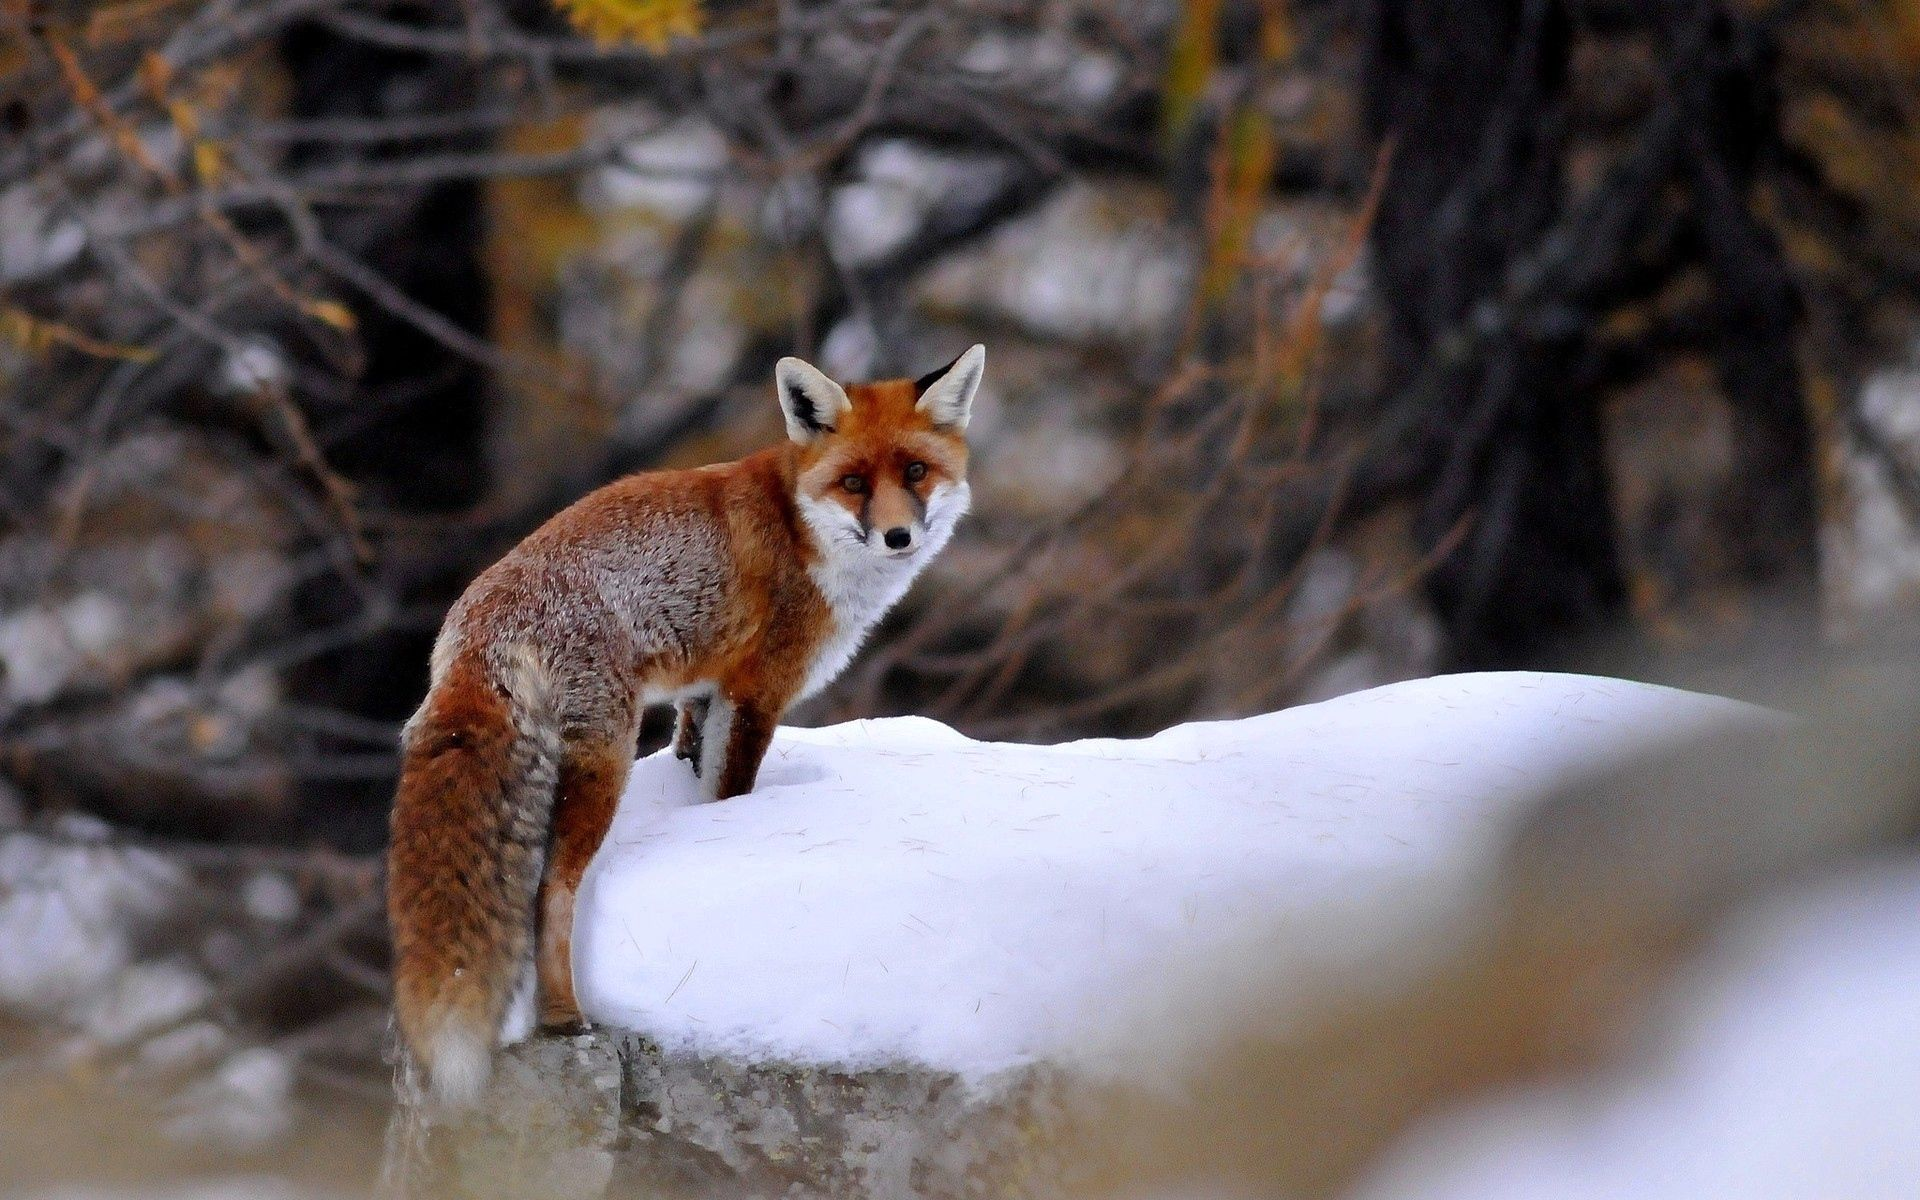 65381 download wallpaper Animals, Fox, Snow, Stroll, Animal screensavers and pictures for free